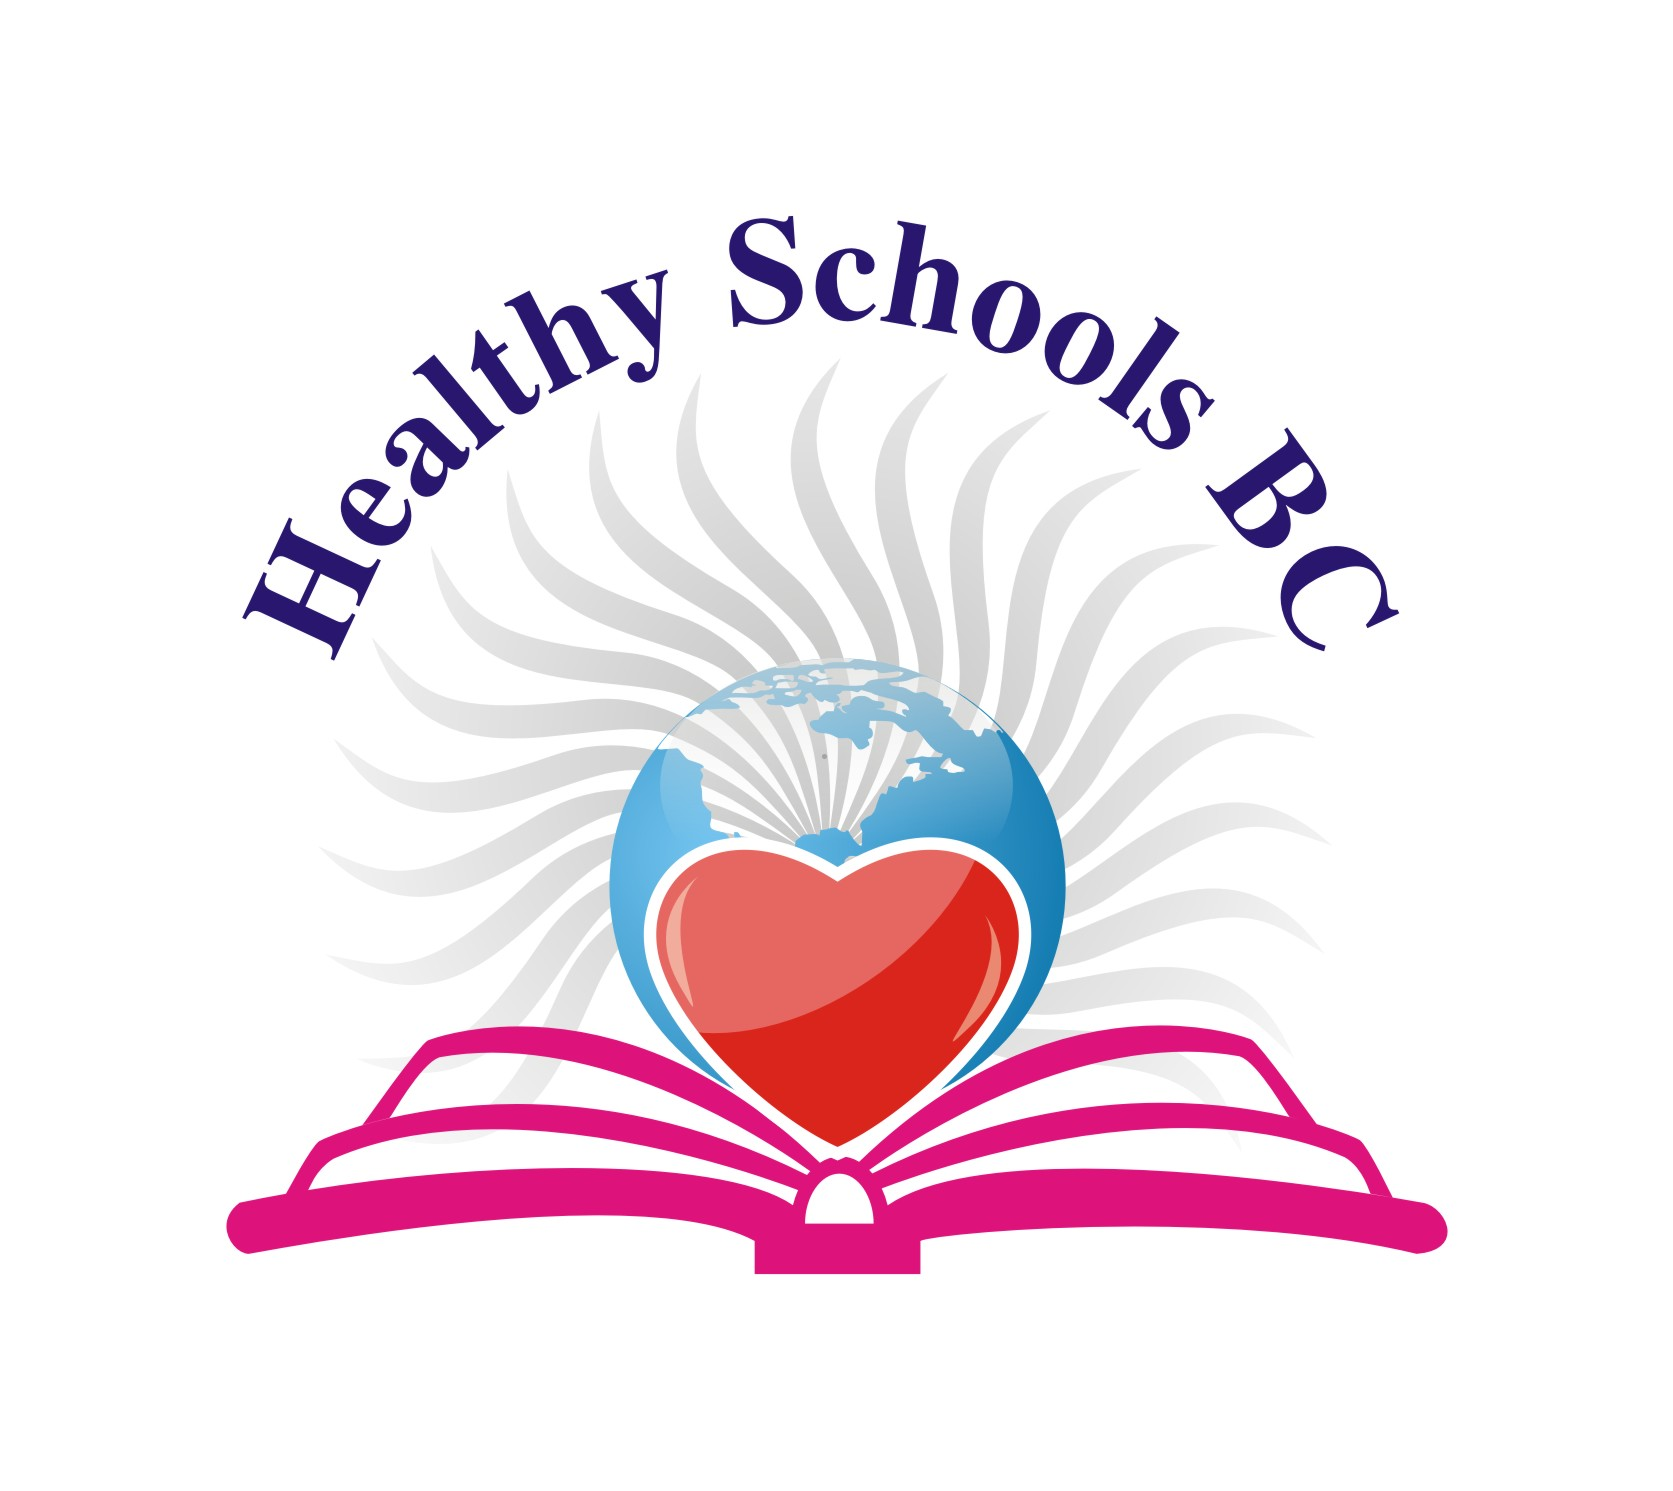 Logo Design by Private User - Entry No. 41 in the Logo Design Contest SImple, Creative and Clean Logo Design for Healthy Schools British Columbia, Canada.